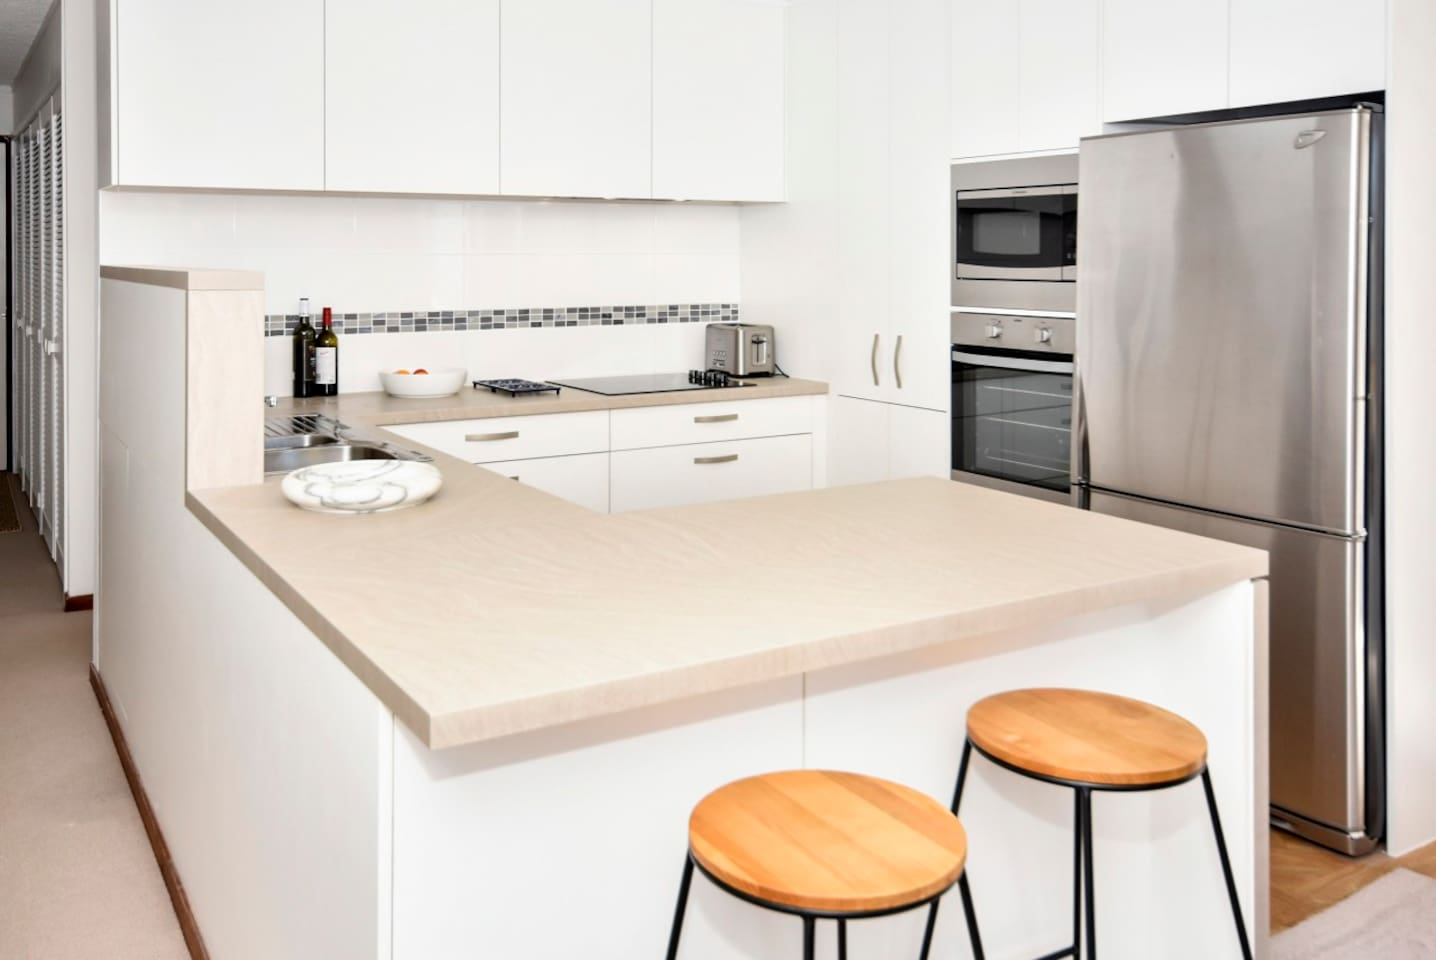 A brand new kitchen and appliances